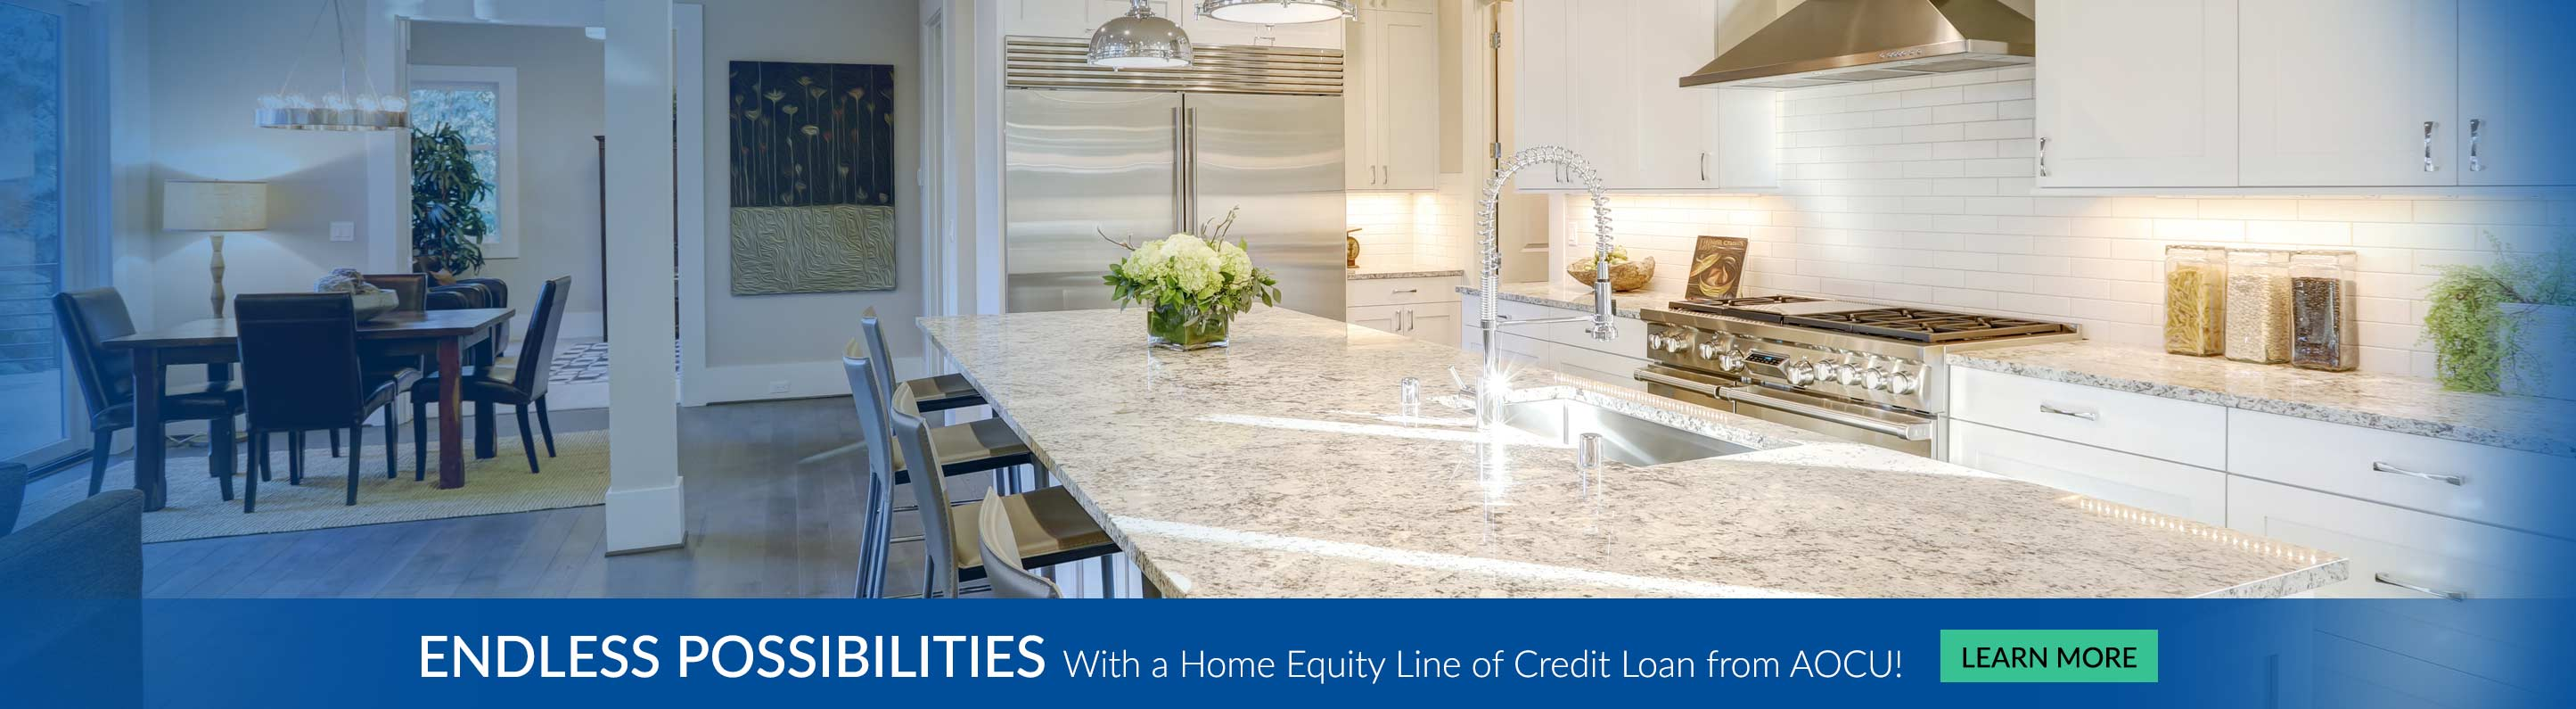 Endless Possibilities with a home equity line of credit loan from AOCU - Learn More